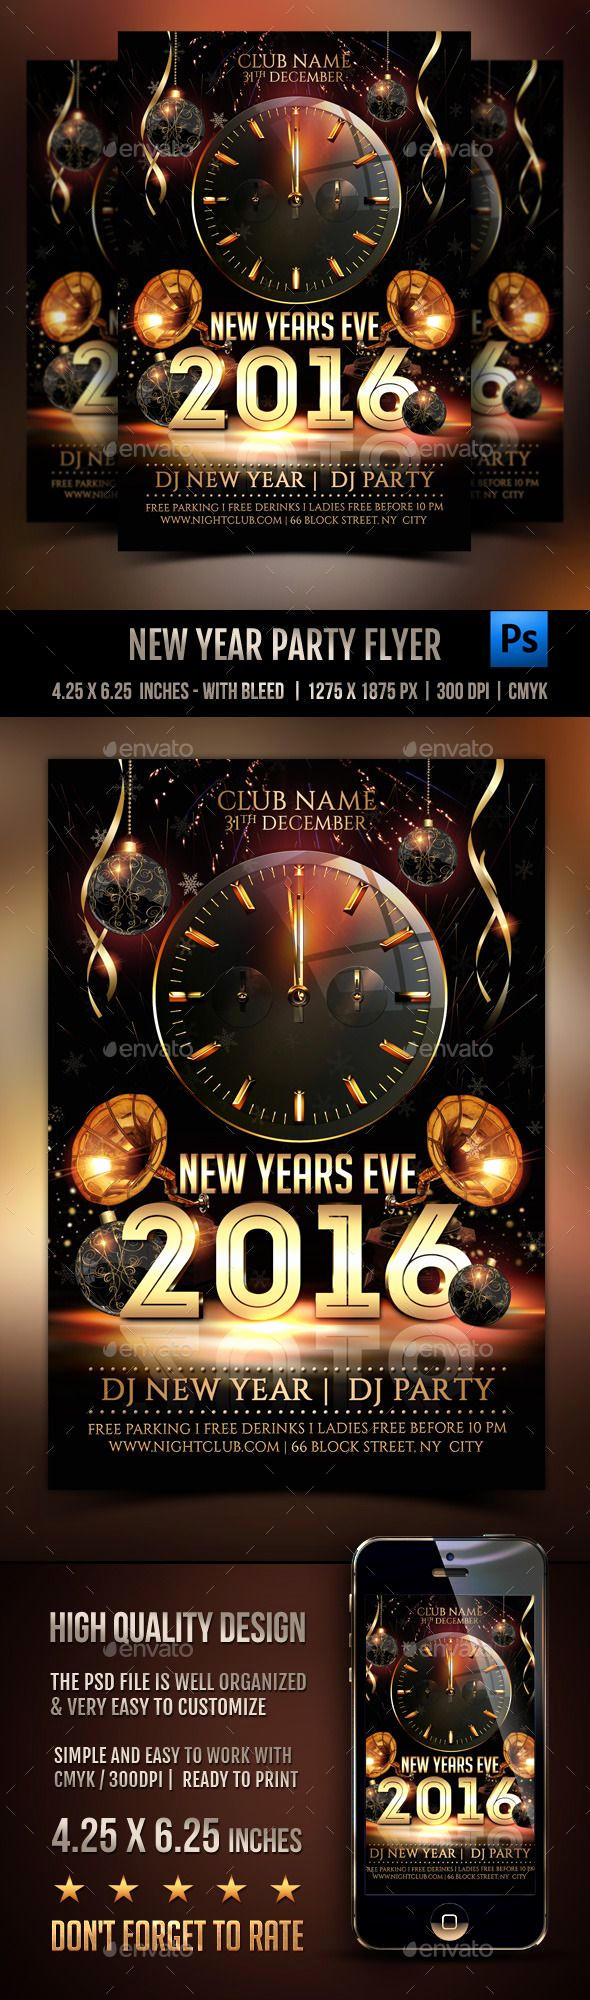 New Years Eve Flyer Beautiful 17 Best Images About New Years Eve On Pinterest